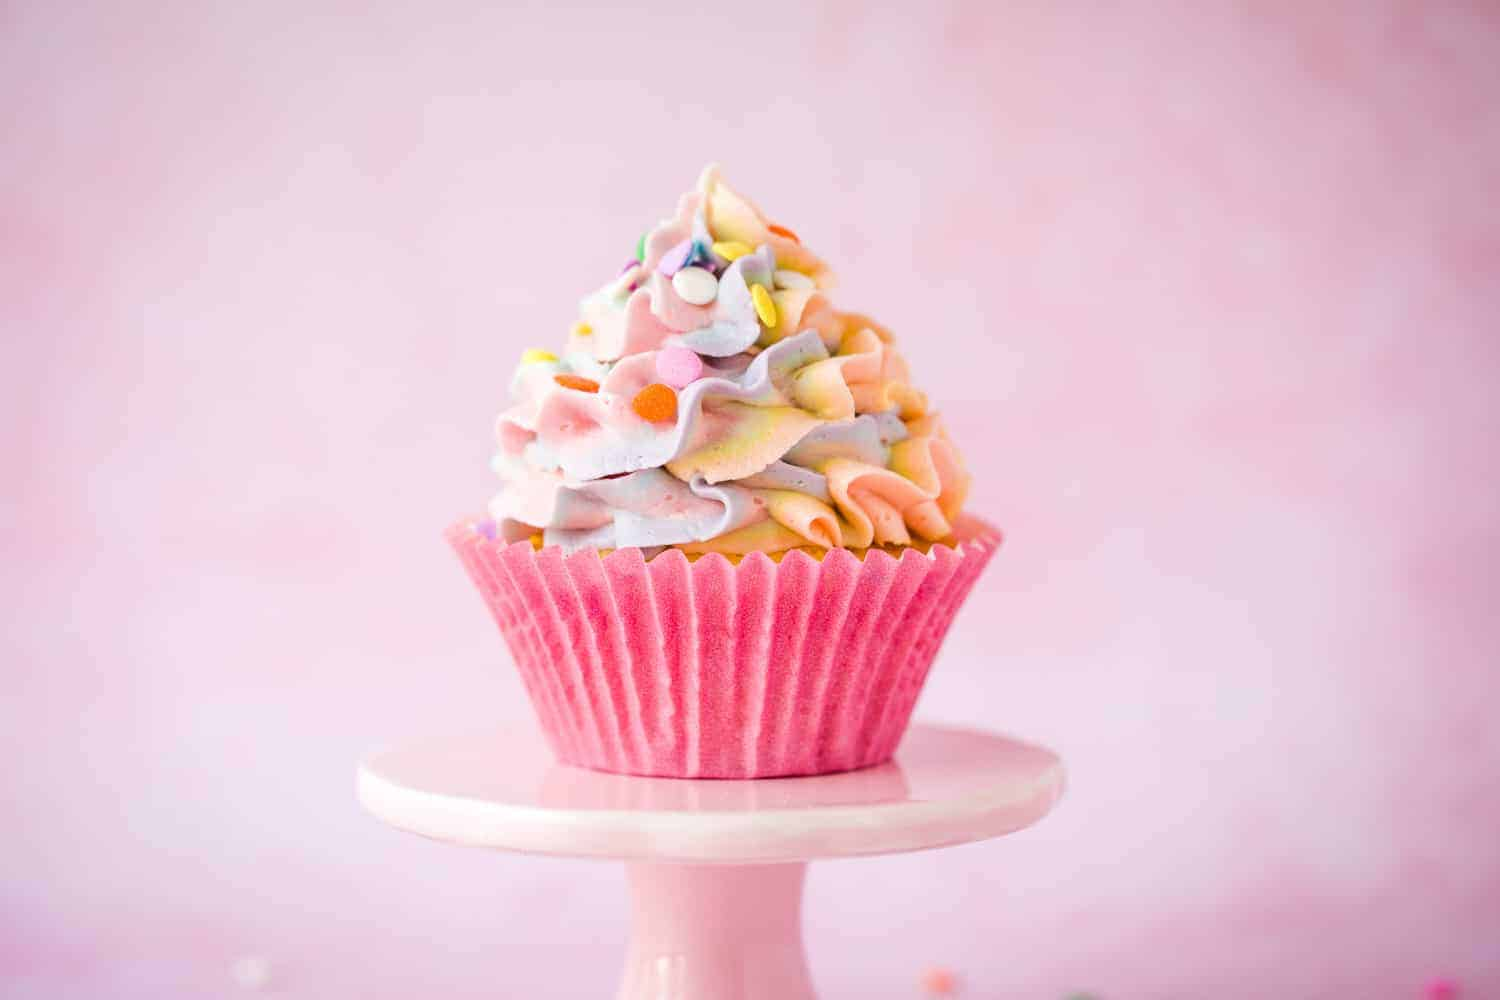 A piñata cupcake on a small pink cake stand with ruffle rainbow coloured icing